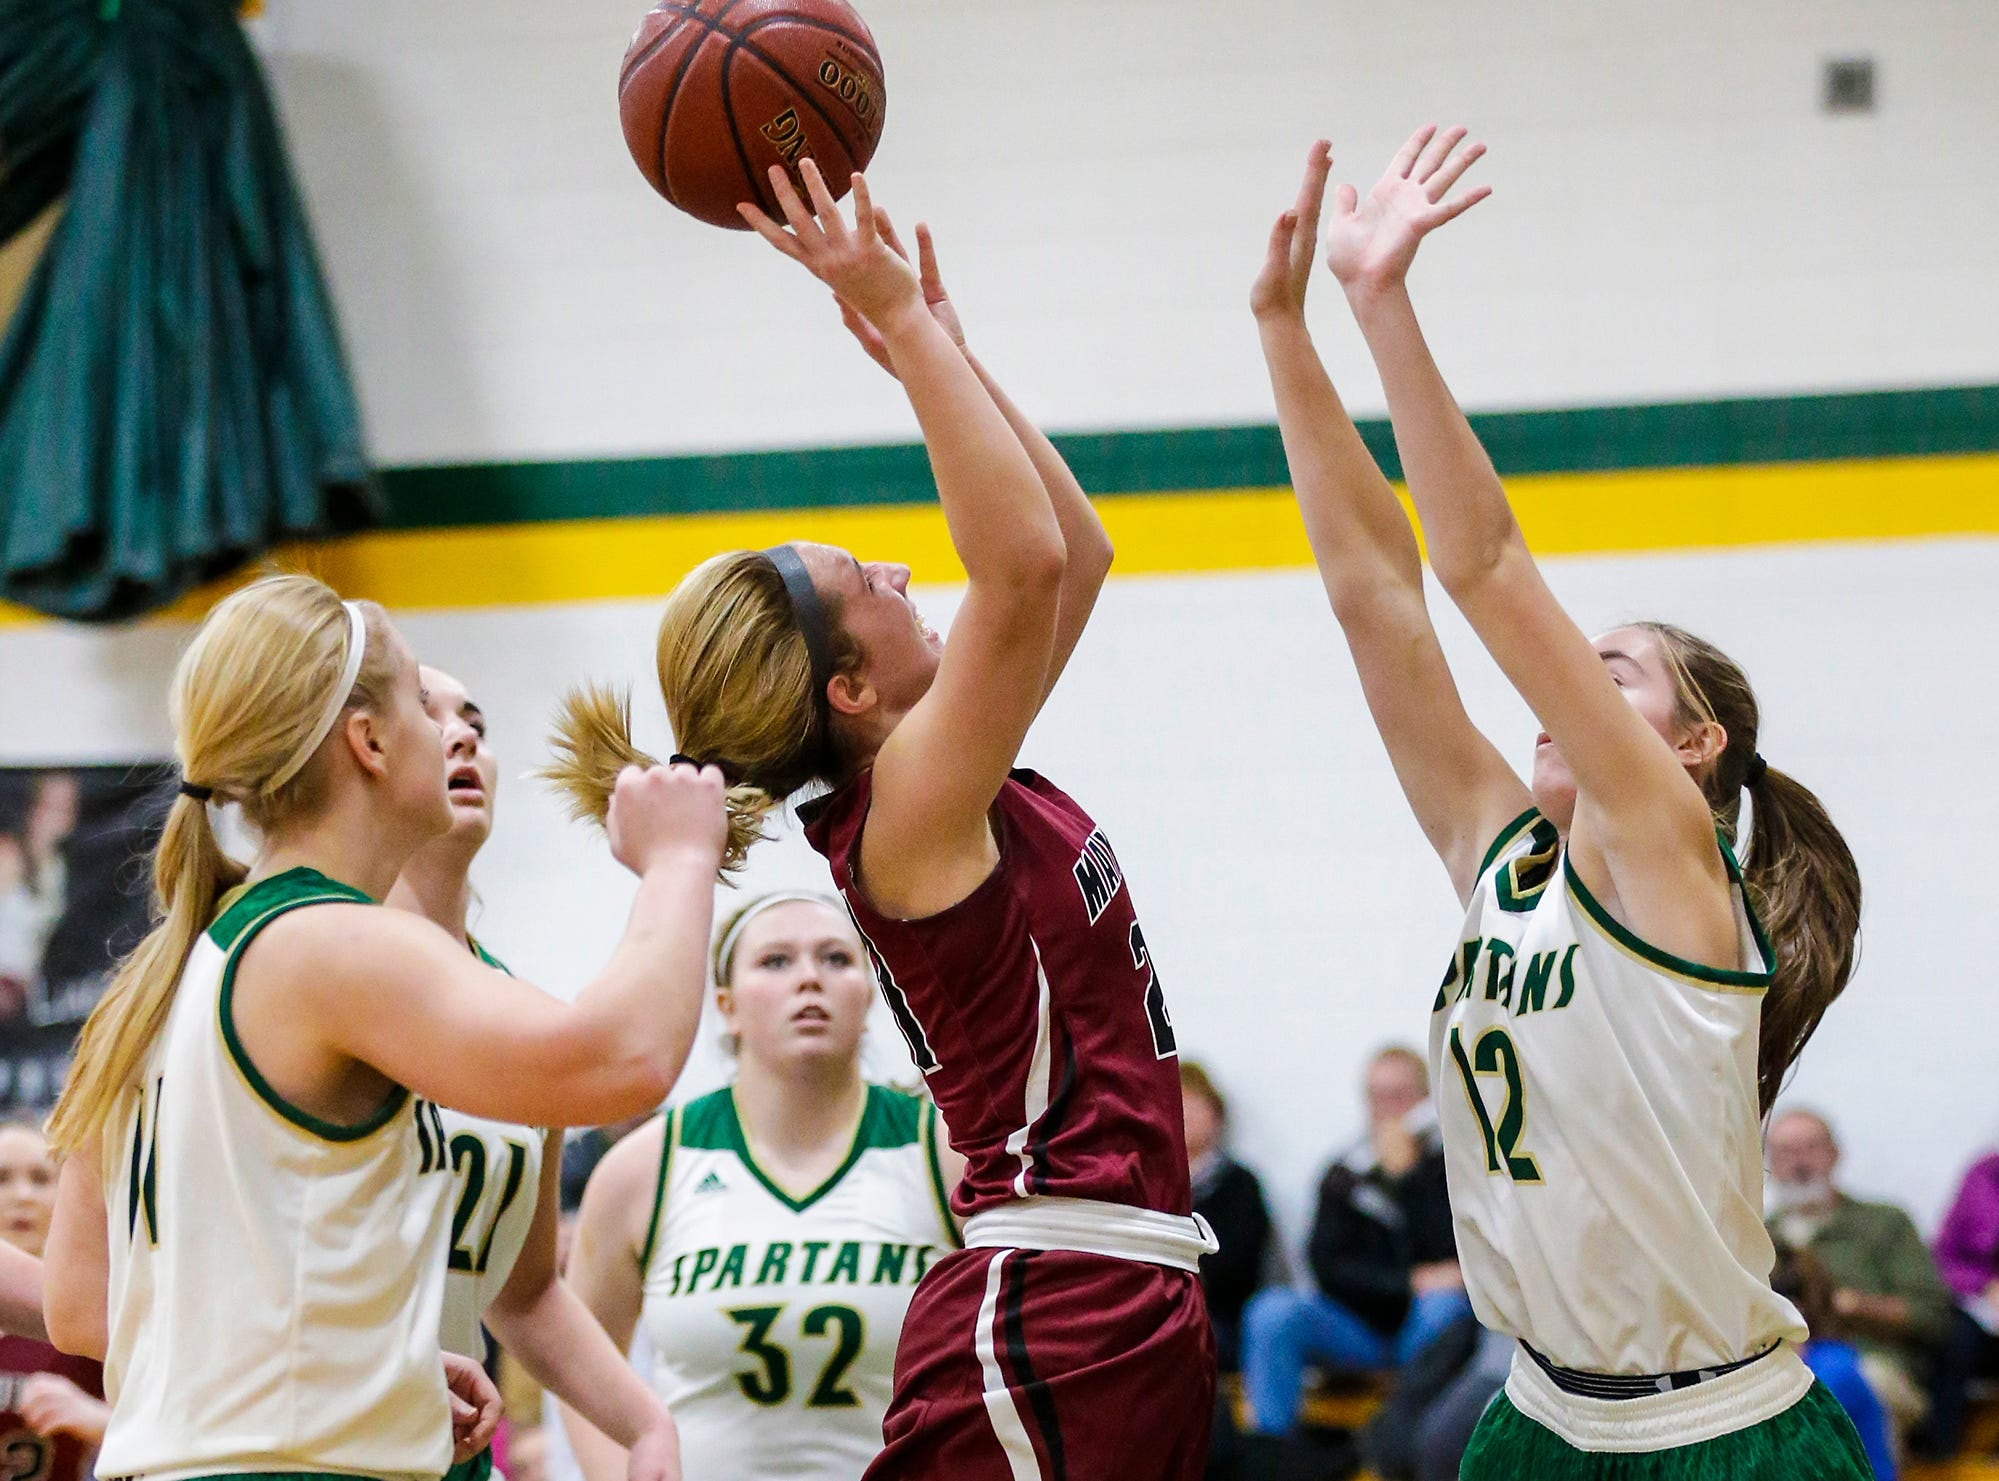 Mayville High School girls basketball's Chloe Welak goes up for a basket over Laconia High School's Lexy Smit during their game Friday, November 30, 2018 in Rosendale. Doug Raflik/USA TODAY NETWORK-Wisconsin